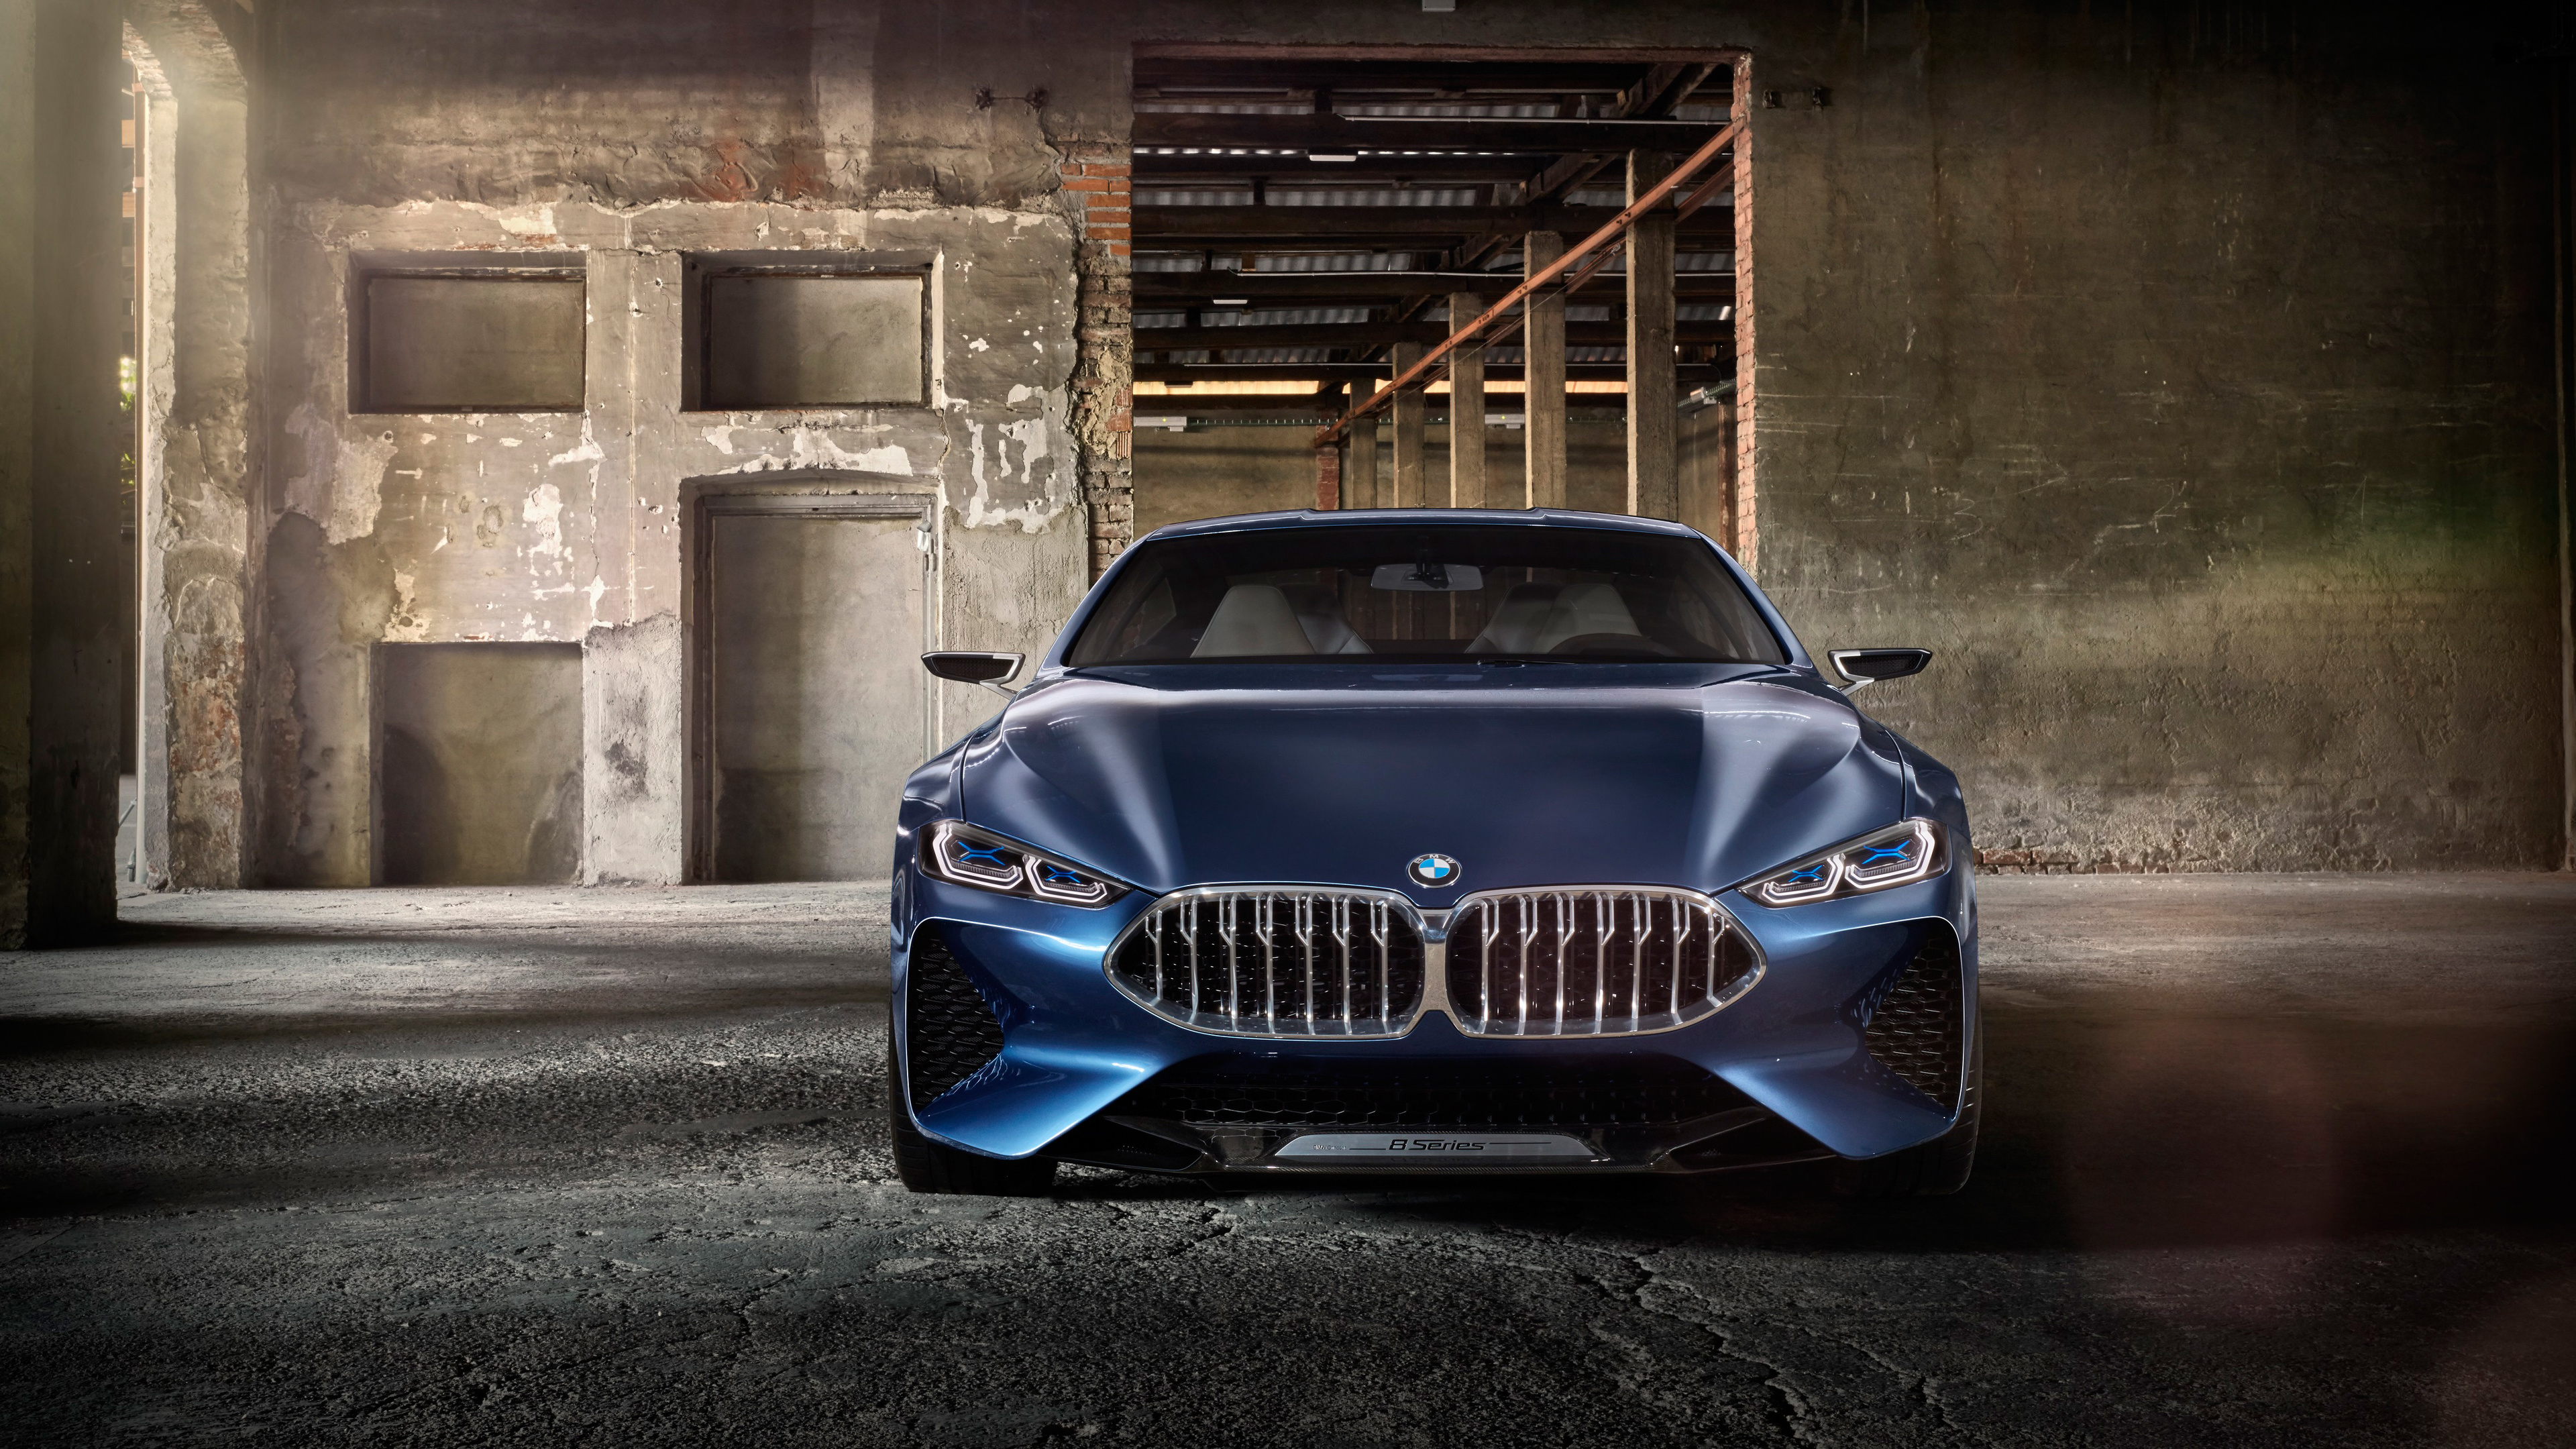 bmw 8 series 1539105490 - Bmw 8 Series - hd-wallpapers, concept cars wallpapers, bmw wallpapers, bmw 8 series wallpapers, 4k-wallpapers, 2017 cars wallpapers